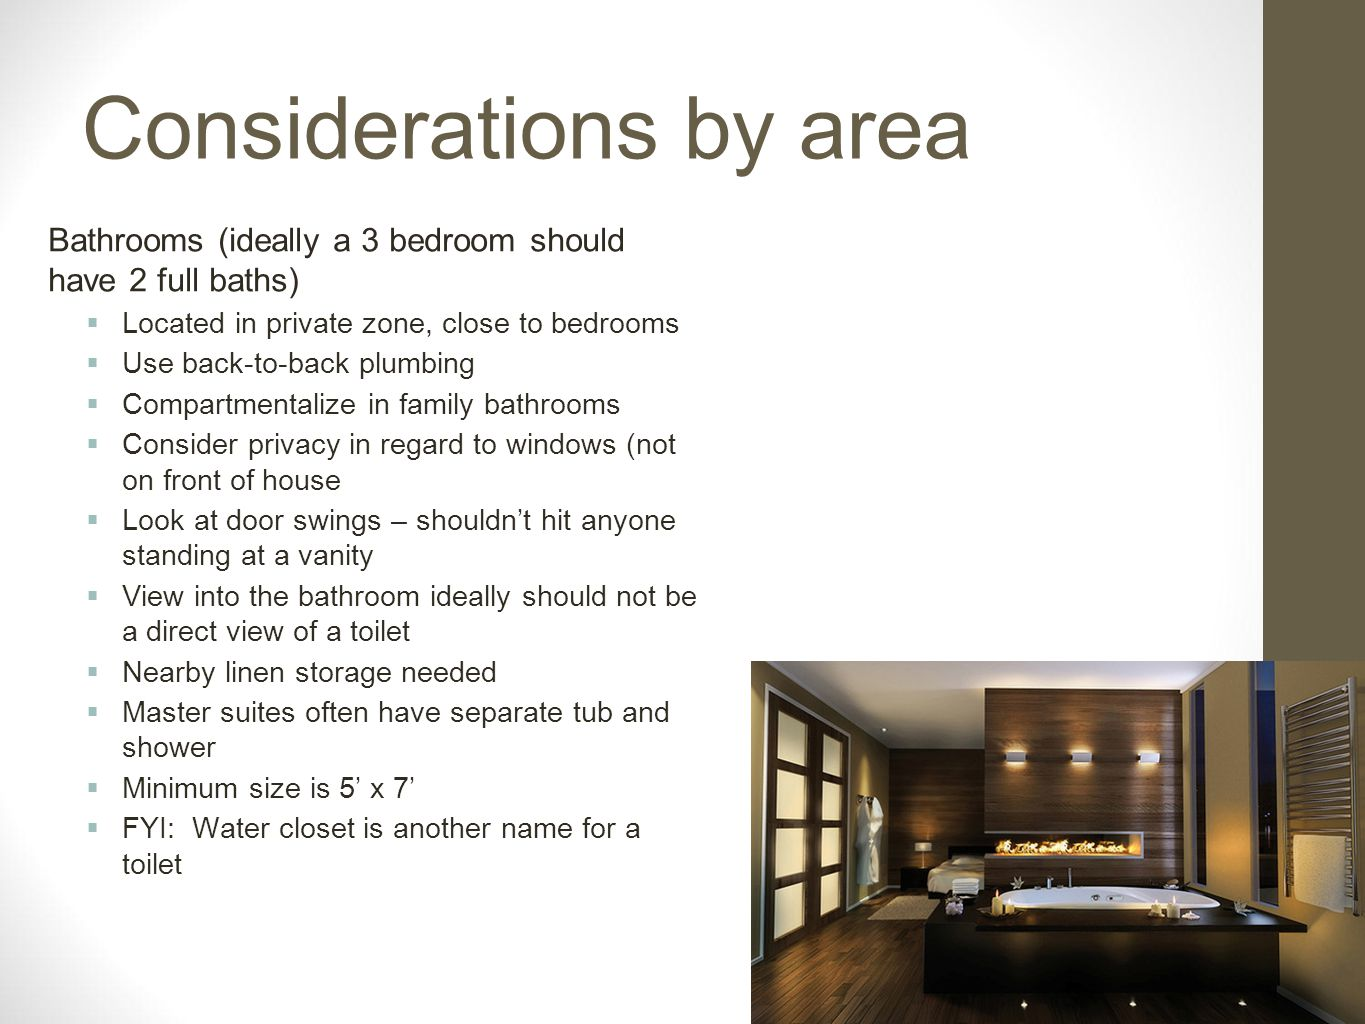 Considerations by area